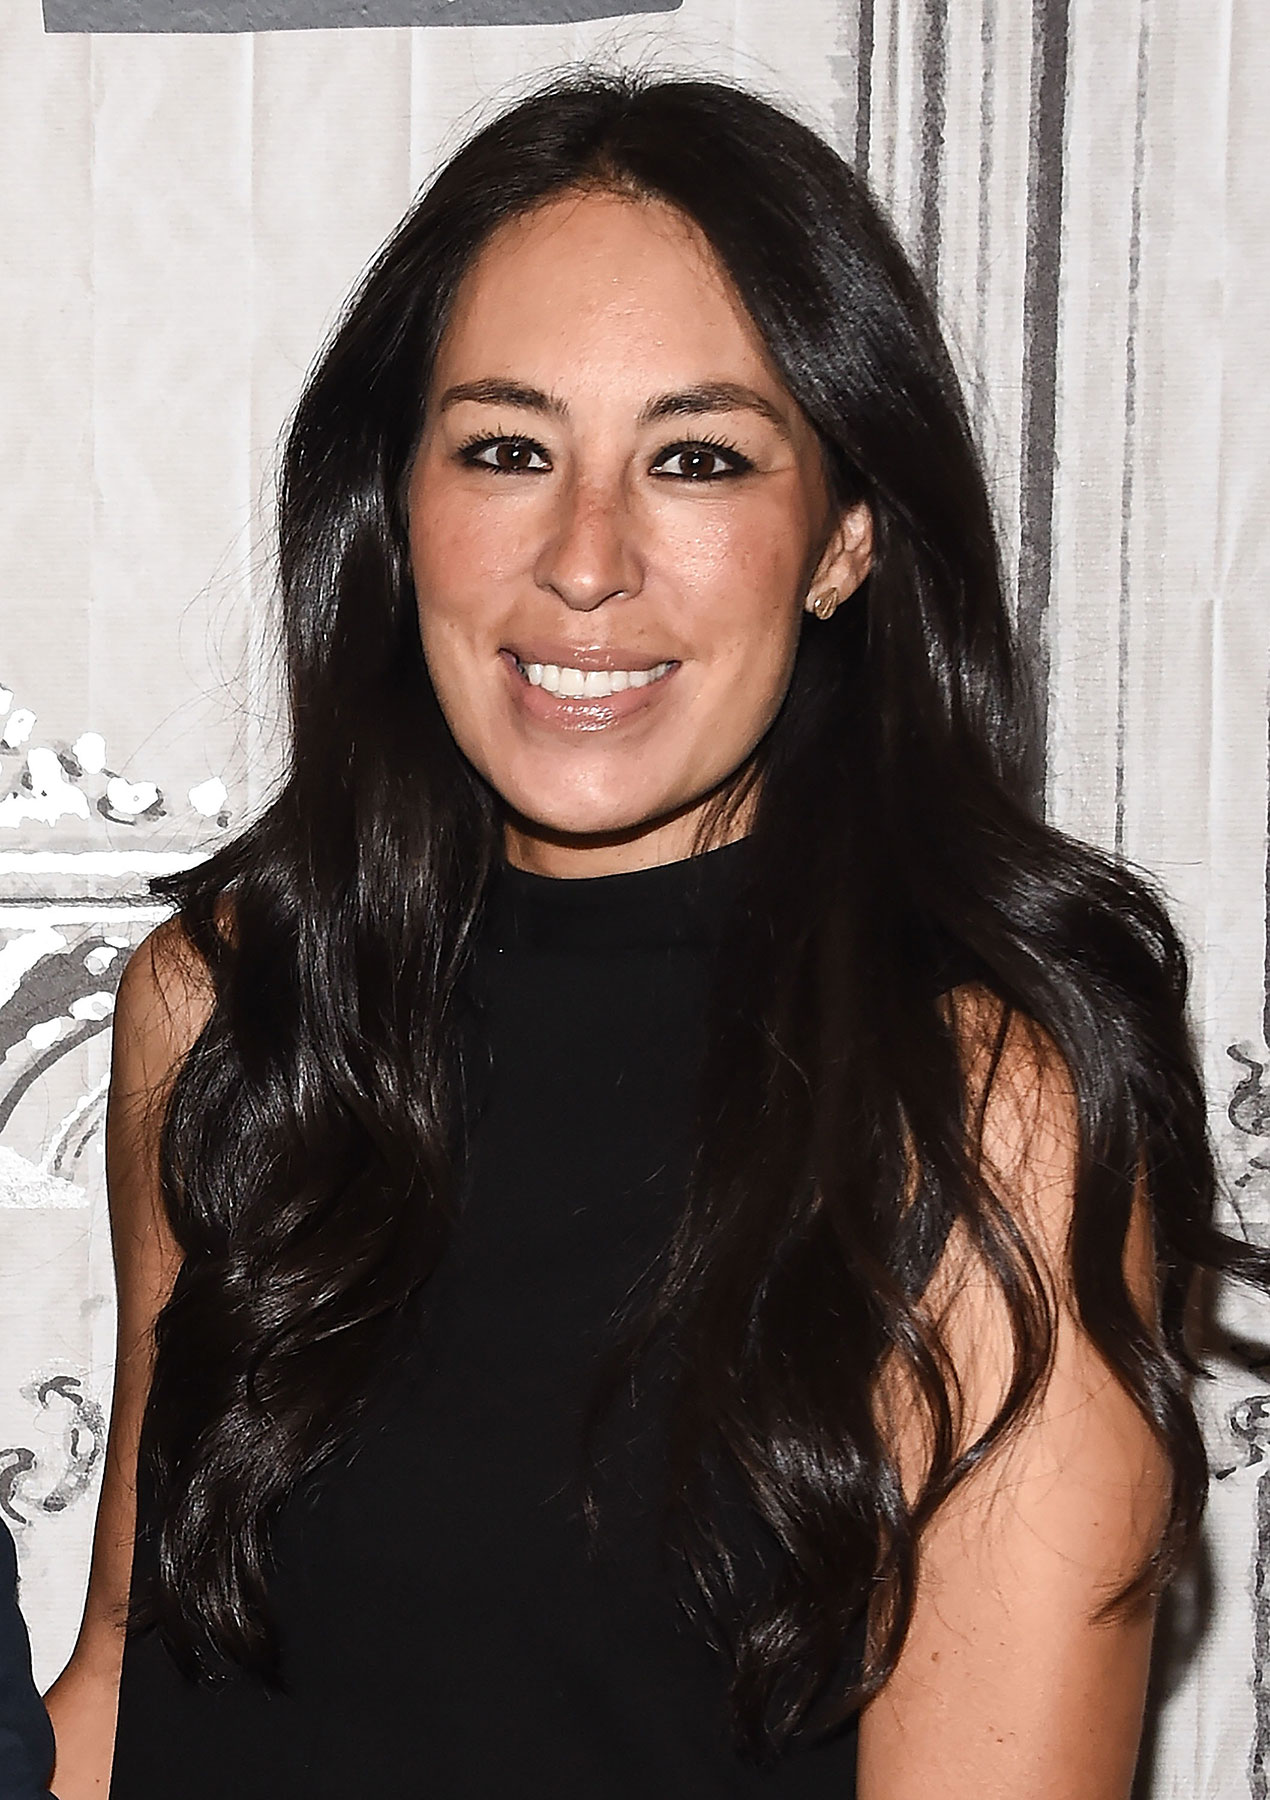 The Paint Colors Joanna Gaines Uses In Her Home (And the Colors She'll Never Use)